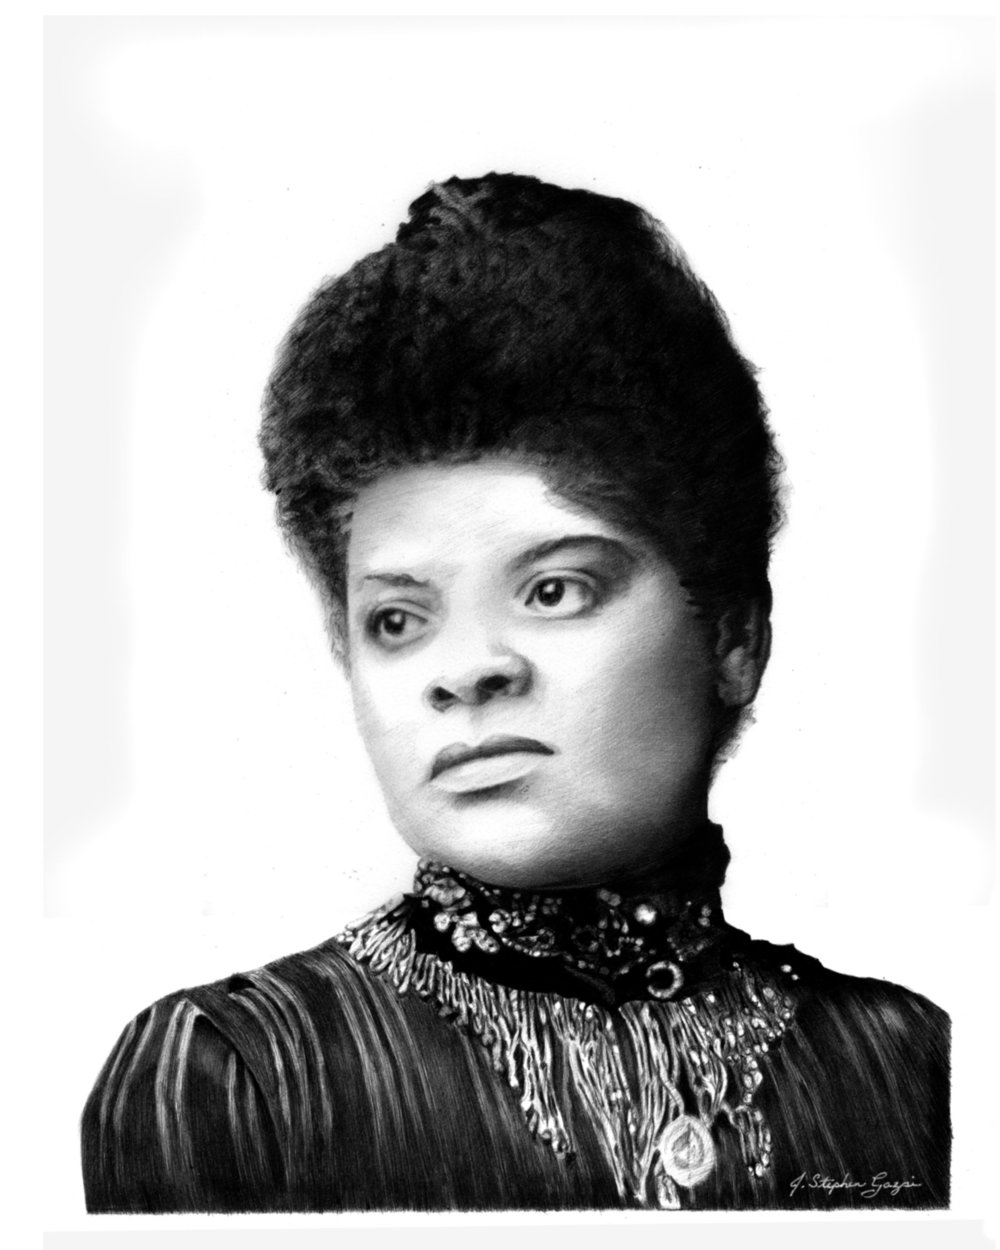 Ida B. Wells, African-American Investigative Journalist, educator, abolitionist, feminist and early leader of the Civil Rights Movement who led an anti-lynching crusade in the United States in the 1890s.